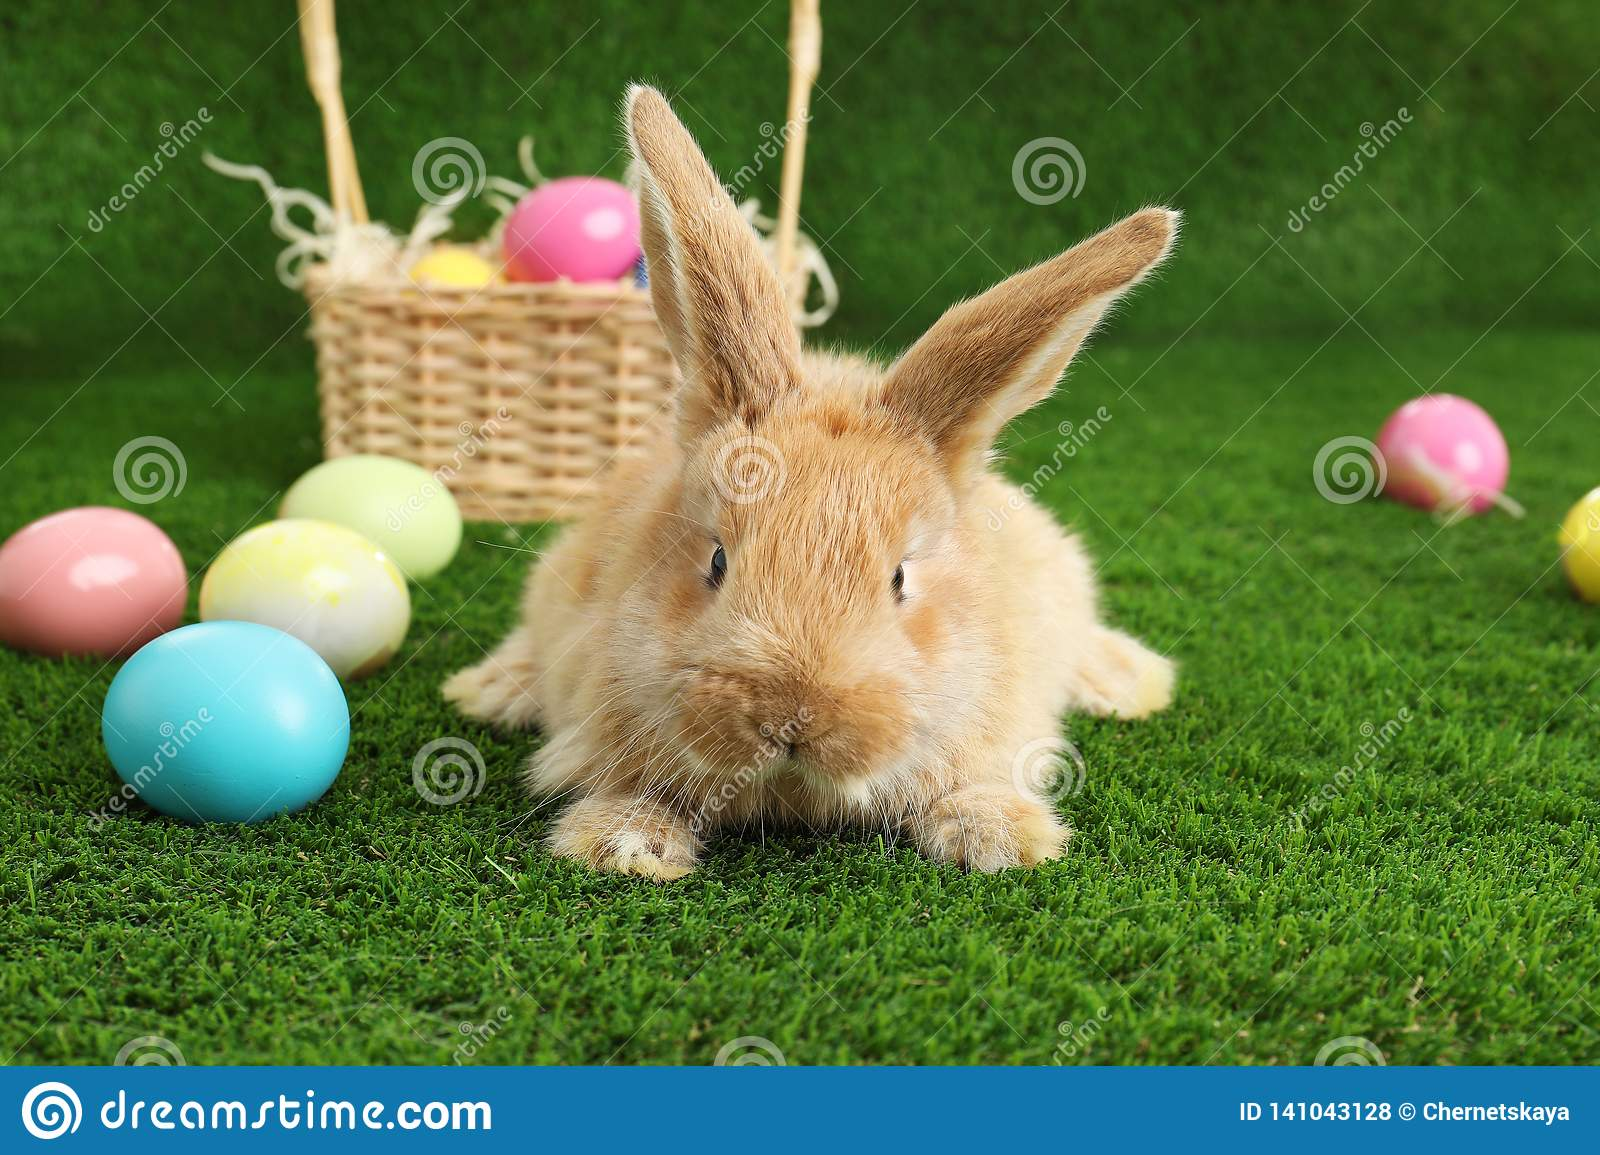 Adorable furry Easter bunny near wicker basket and dyed eggs